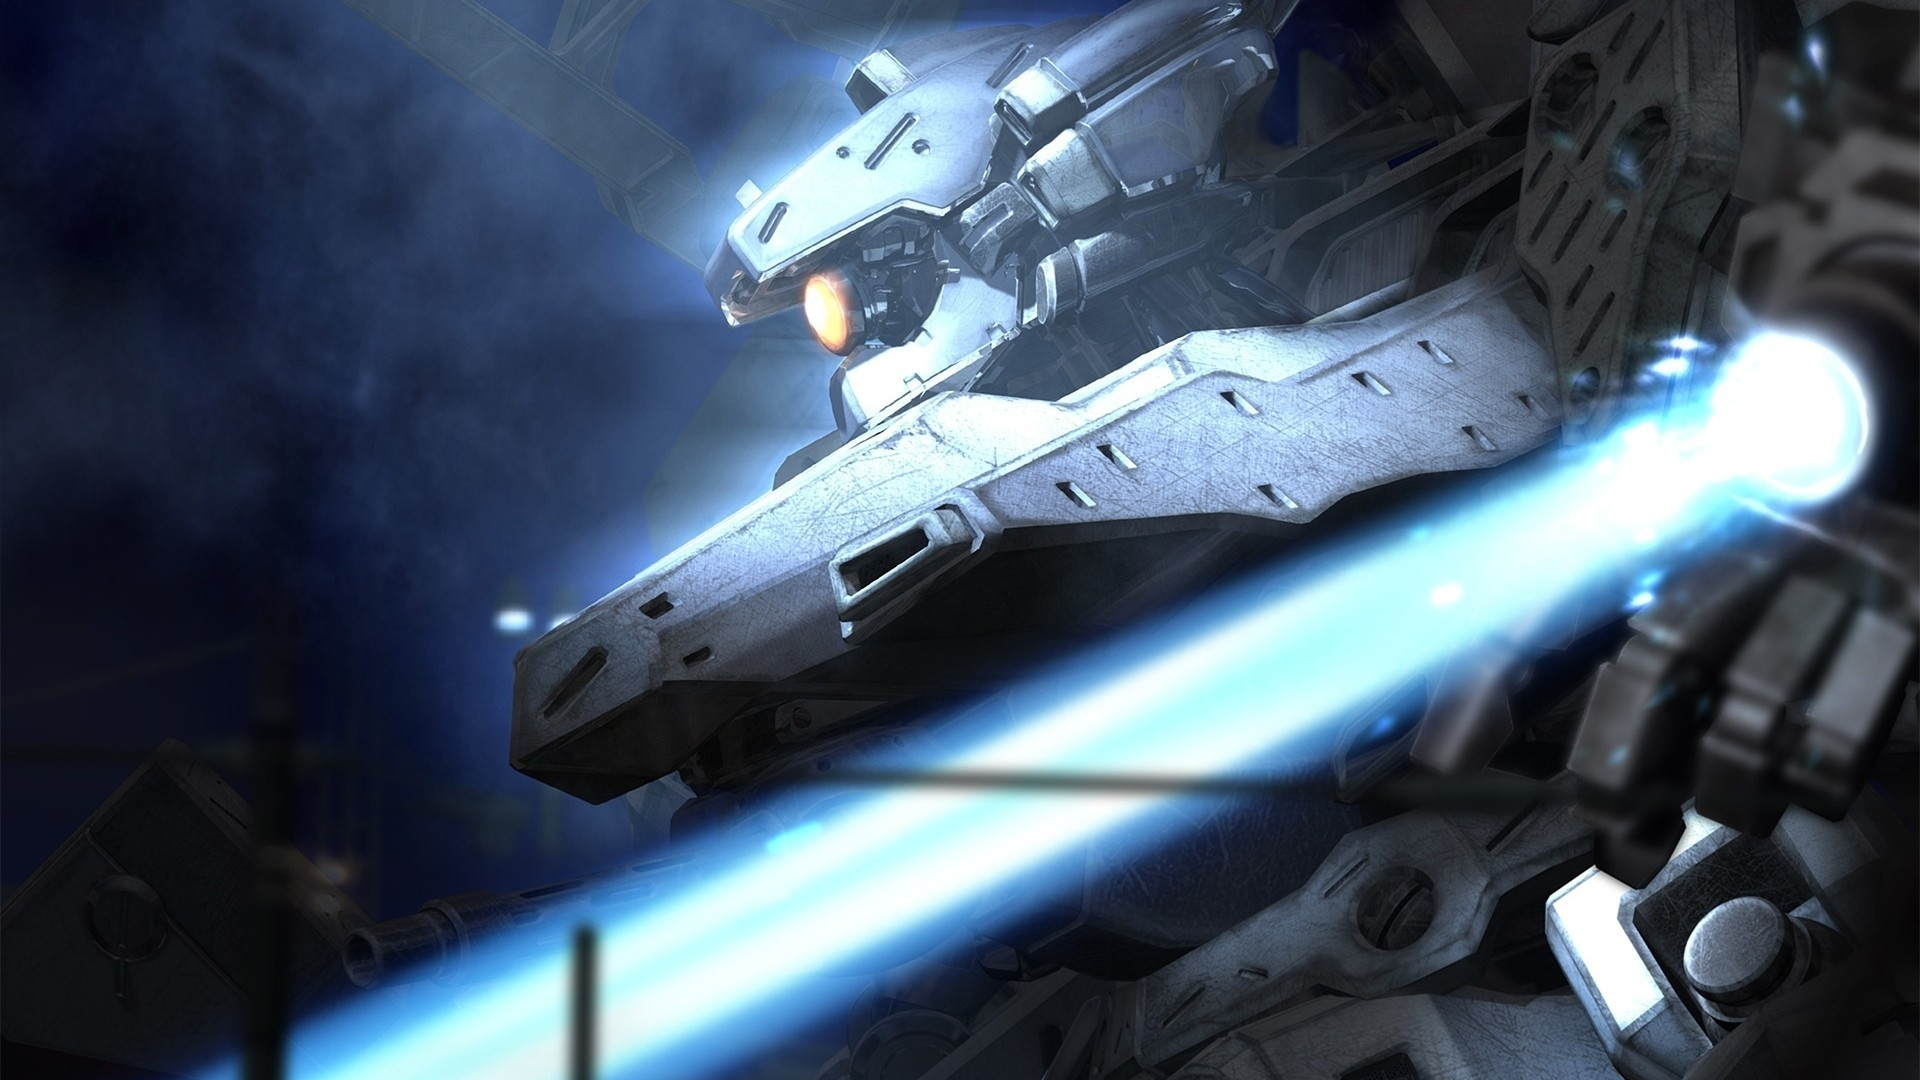 Armored core science fiction technology wallpaper allwallpaper armored core science fiction technology wallpaper voltagebd Images